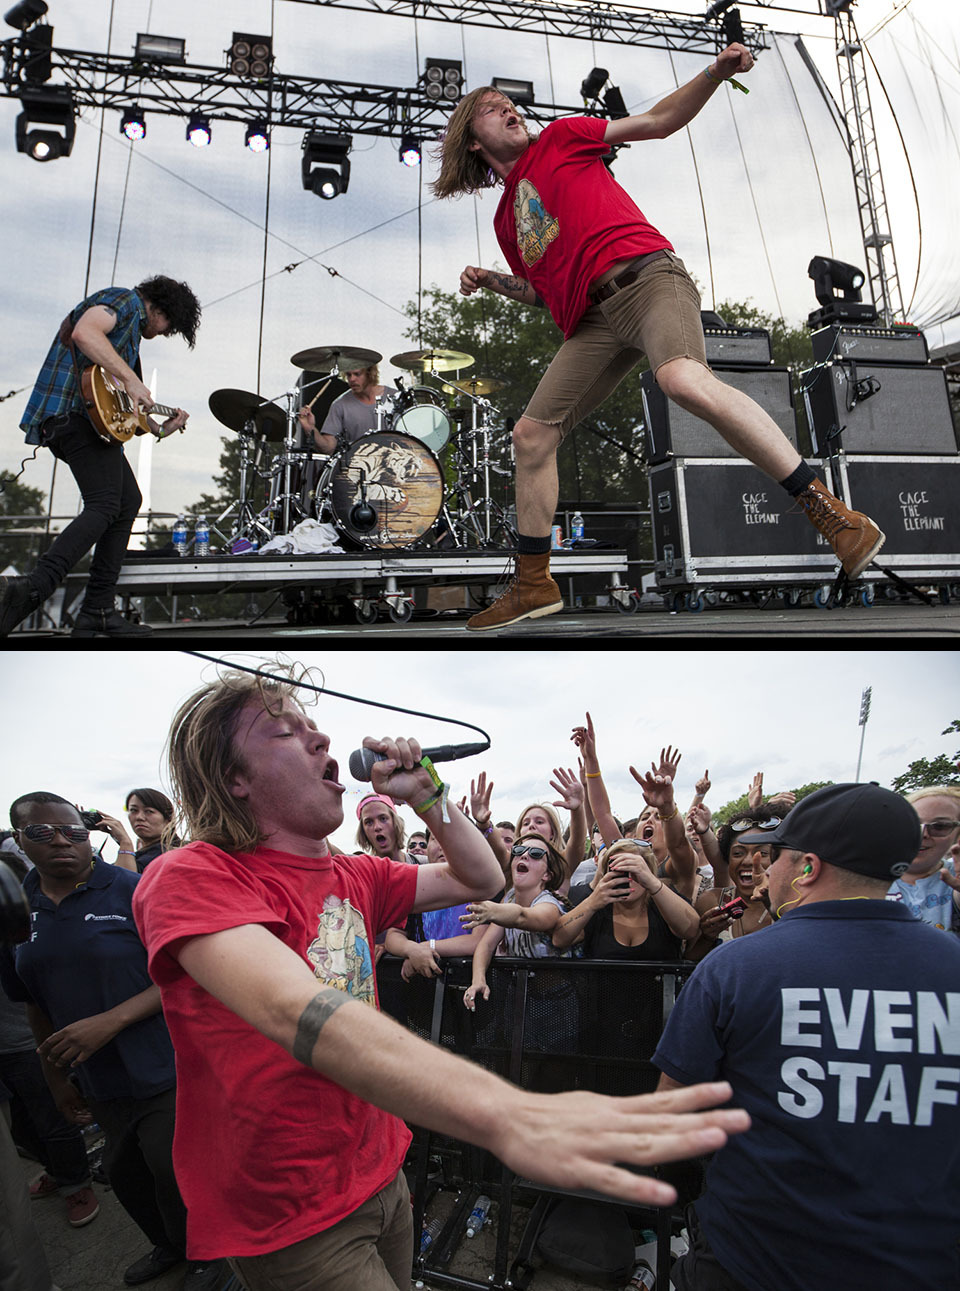 Cage the Elephant - 06/24/12 - Governors Ball - NYC Photo by David Andrako on assignment for SPIN Magazine more at spin.com.